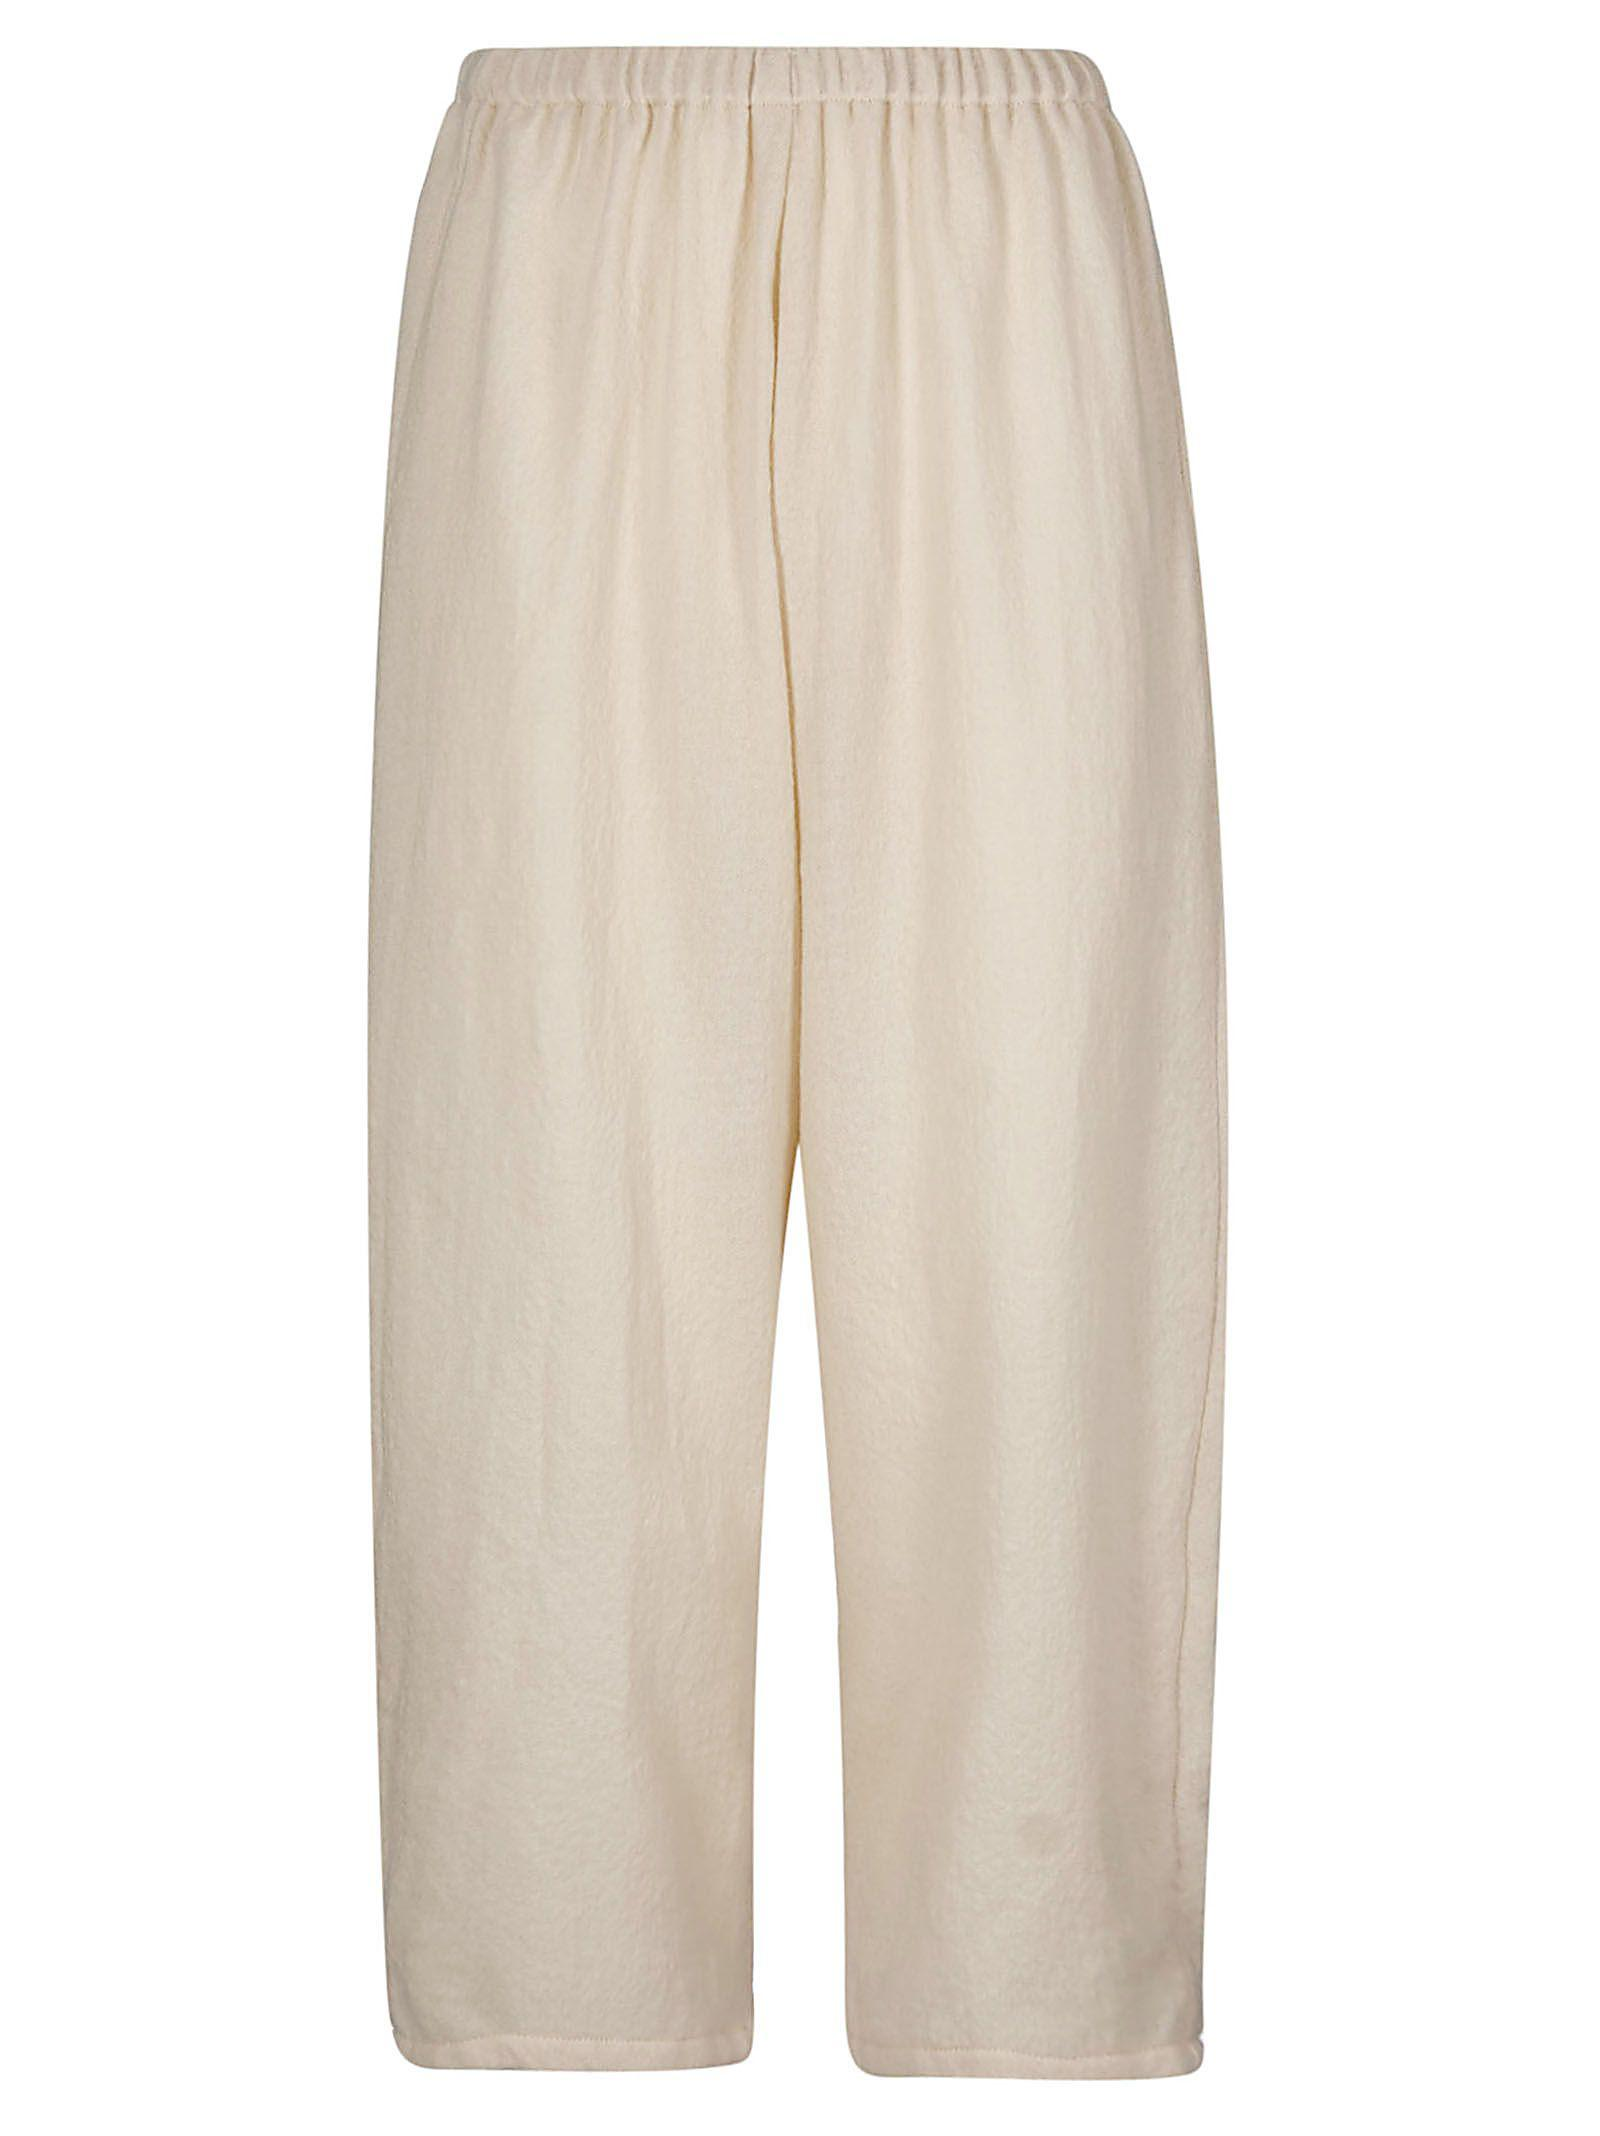 A Punto B Elasticated Cropped Trousers In Butter